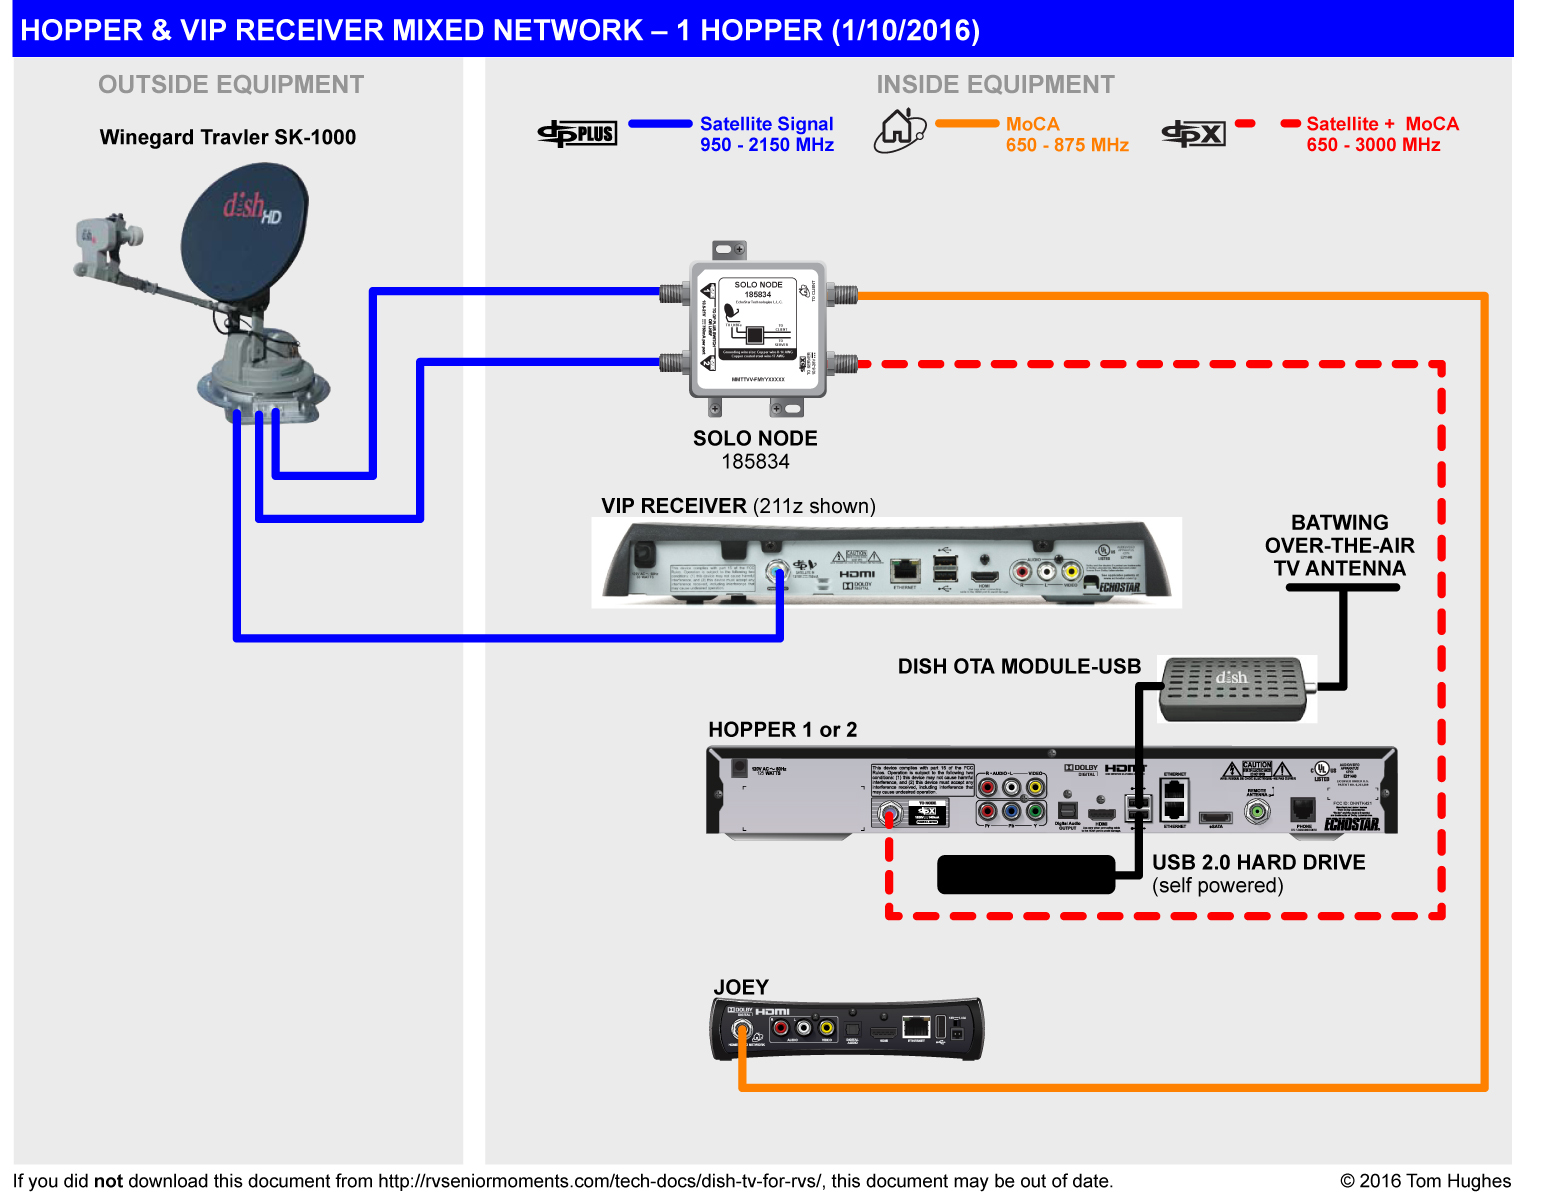 DISH TV RV Network Diagrams - Page 11 - iRV2 Forums | Wiring Schematic Of Dish |  | iRV2 Forums